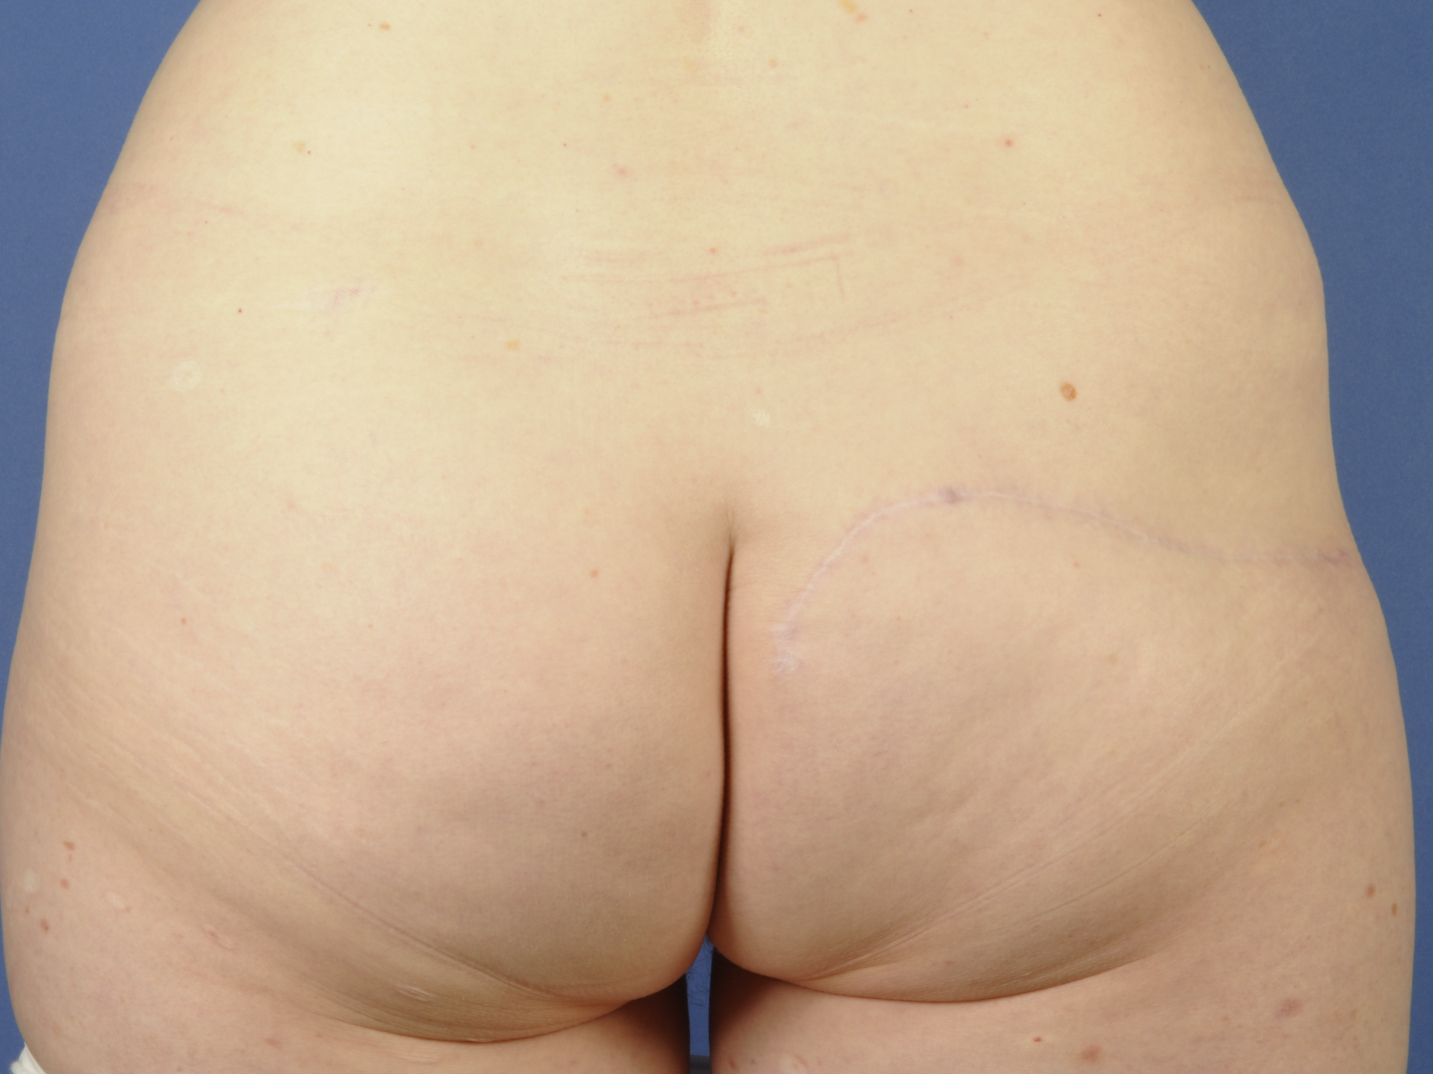 Skin-sparing mastectomy and immediate reconstruction with TMG - after